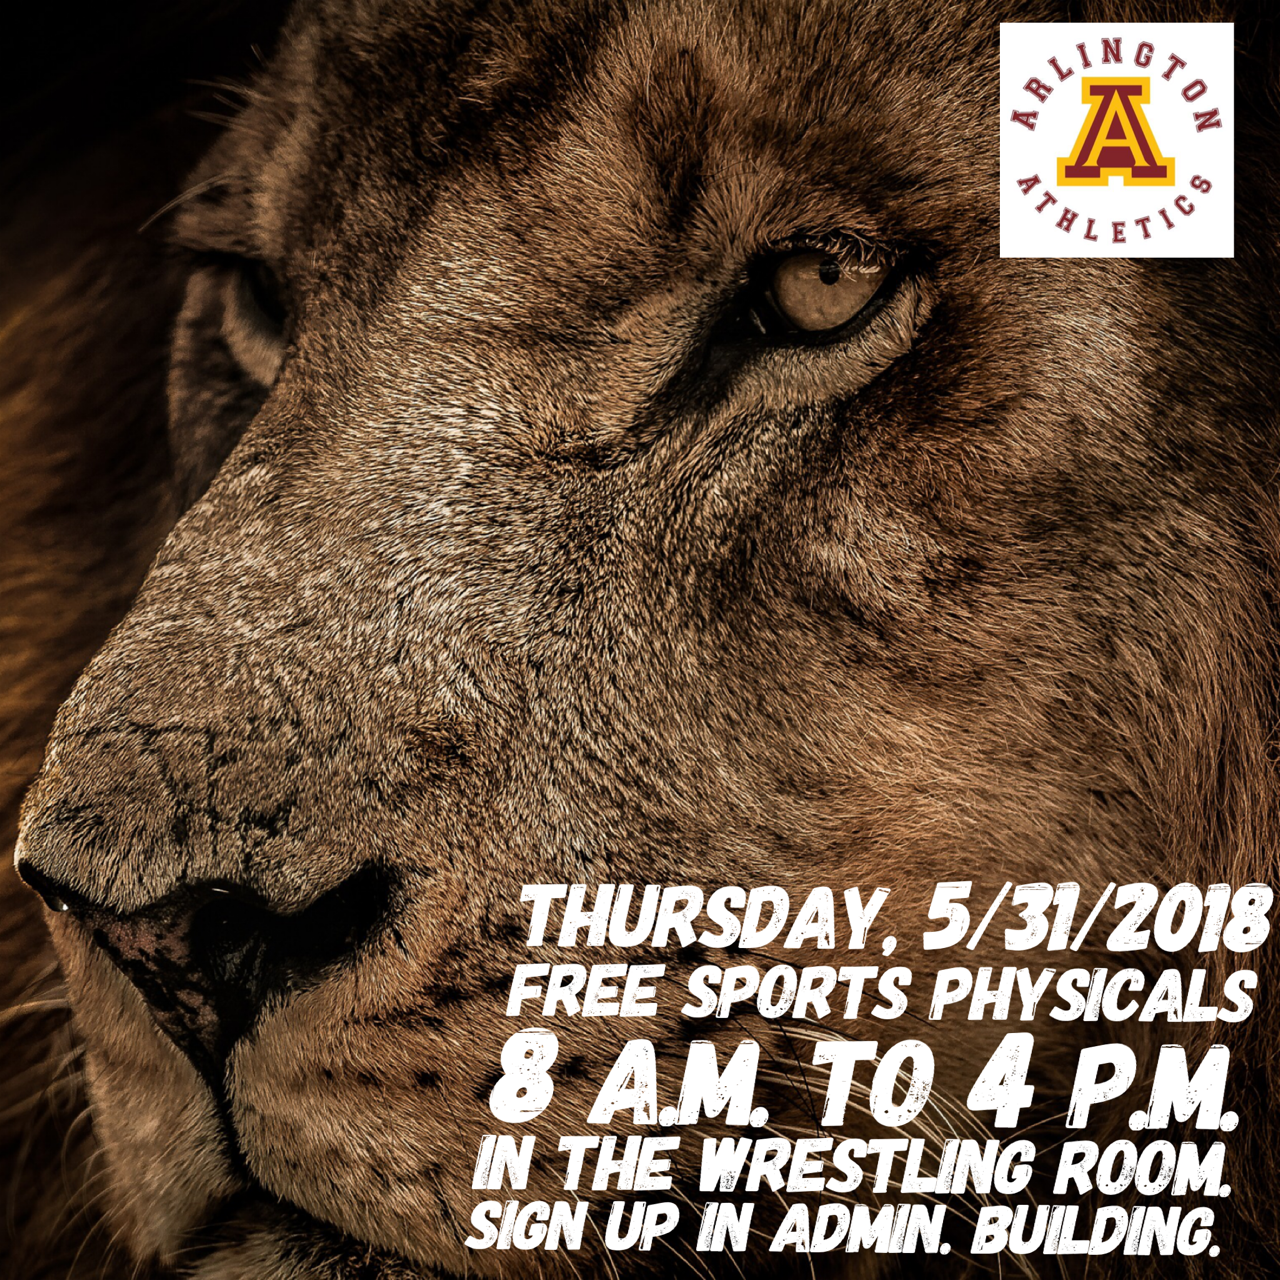 FREE RUSD Sports Physicals at Arlington H.S. Thursday, 5/31, from 8 a.m. to 4 p.m.